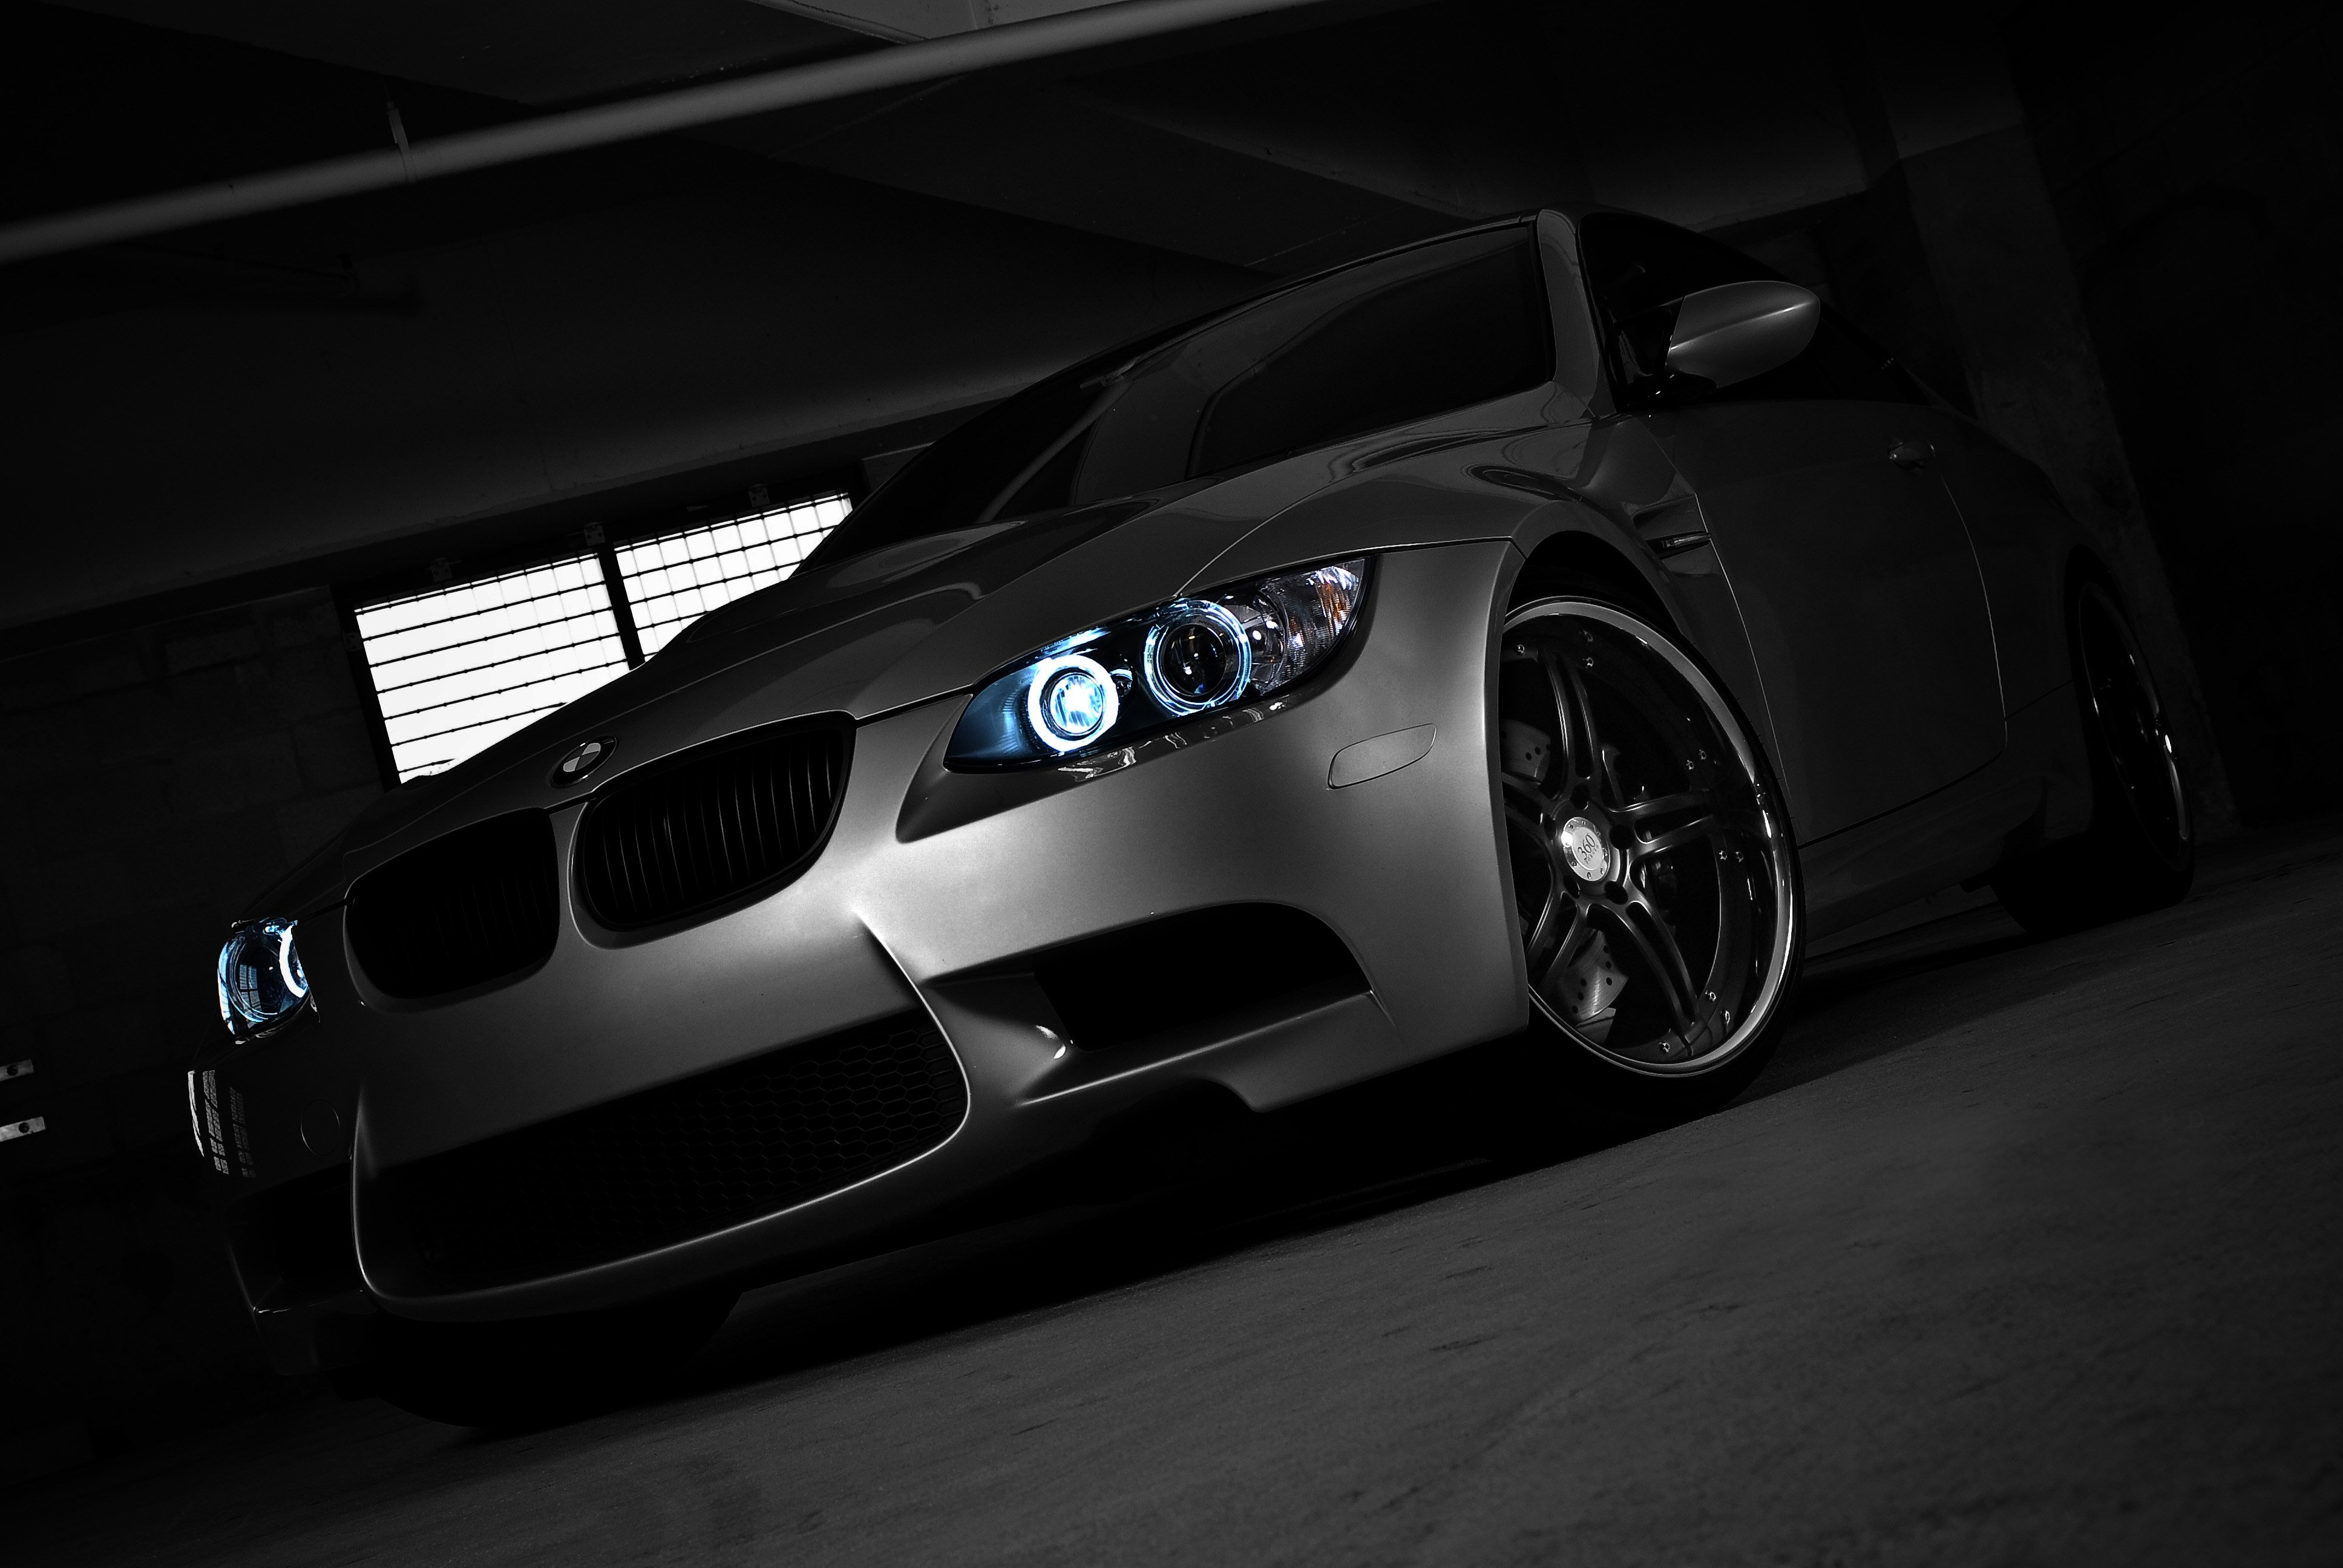 Latest Bmw Images Free Download Pixelstalk Net Free Download